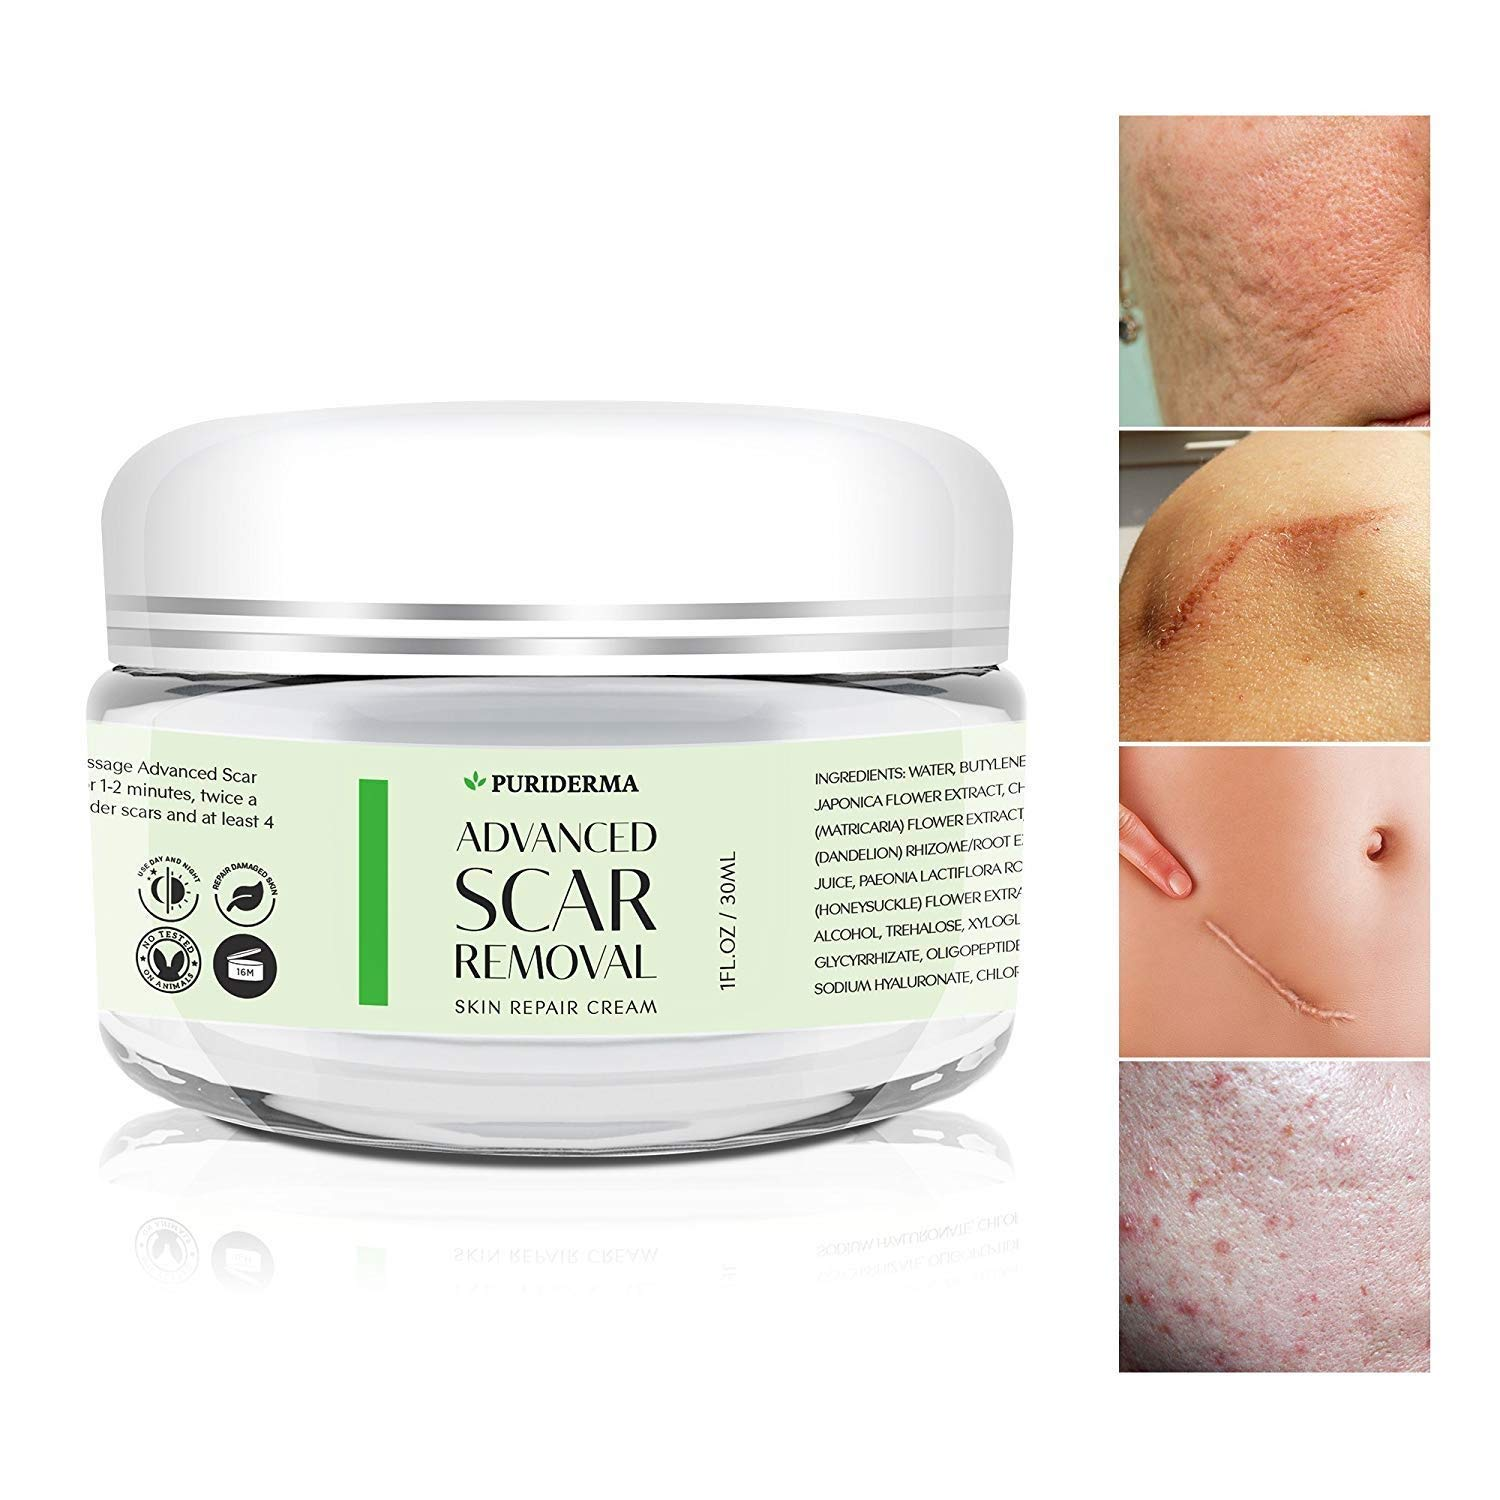 Scar Removal Cream - Advanced Treatment for Face & Body, Old & New Scars from Cuts, Stretch Marks, C-Sections & Surgeries - With Natural Herbal Extracts Formula - (30 ml) PuriDerma